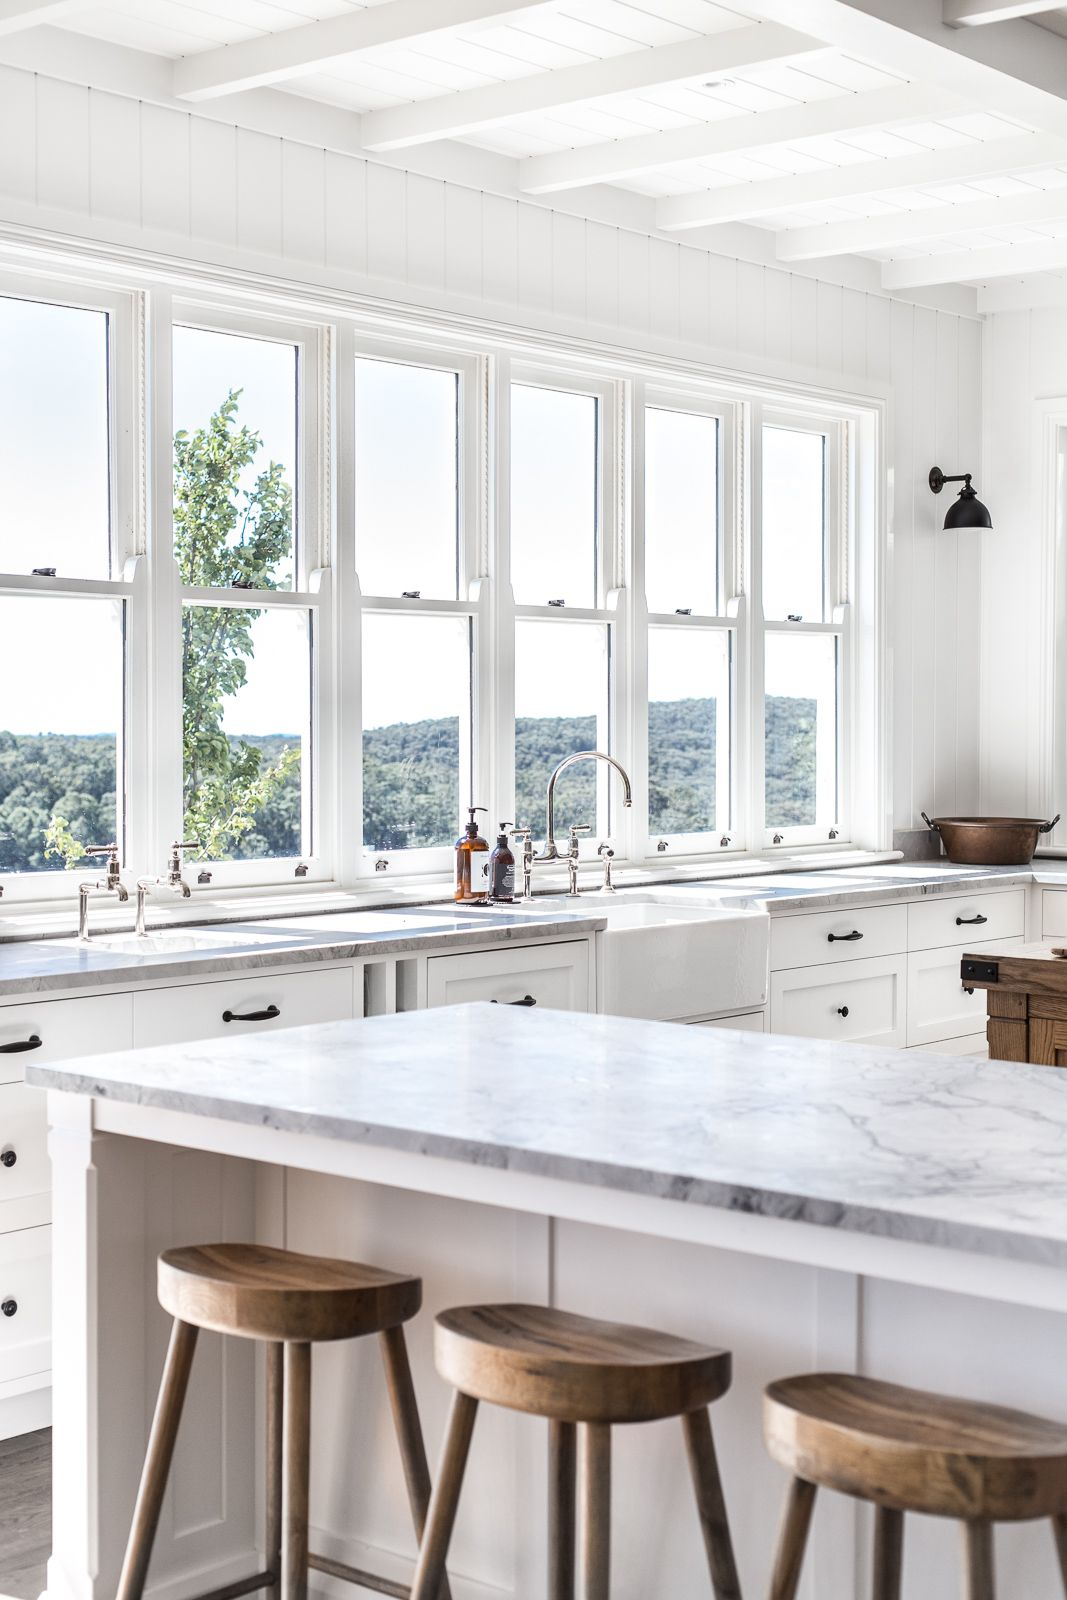 How To Create A Modern Farmhouse Kitchen - COTTONWOOD AND CO